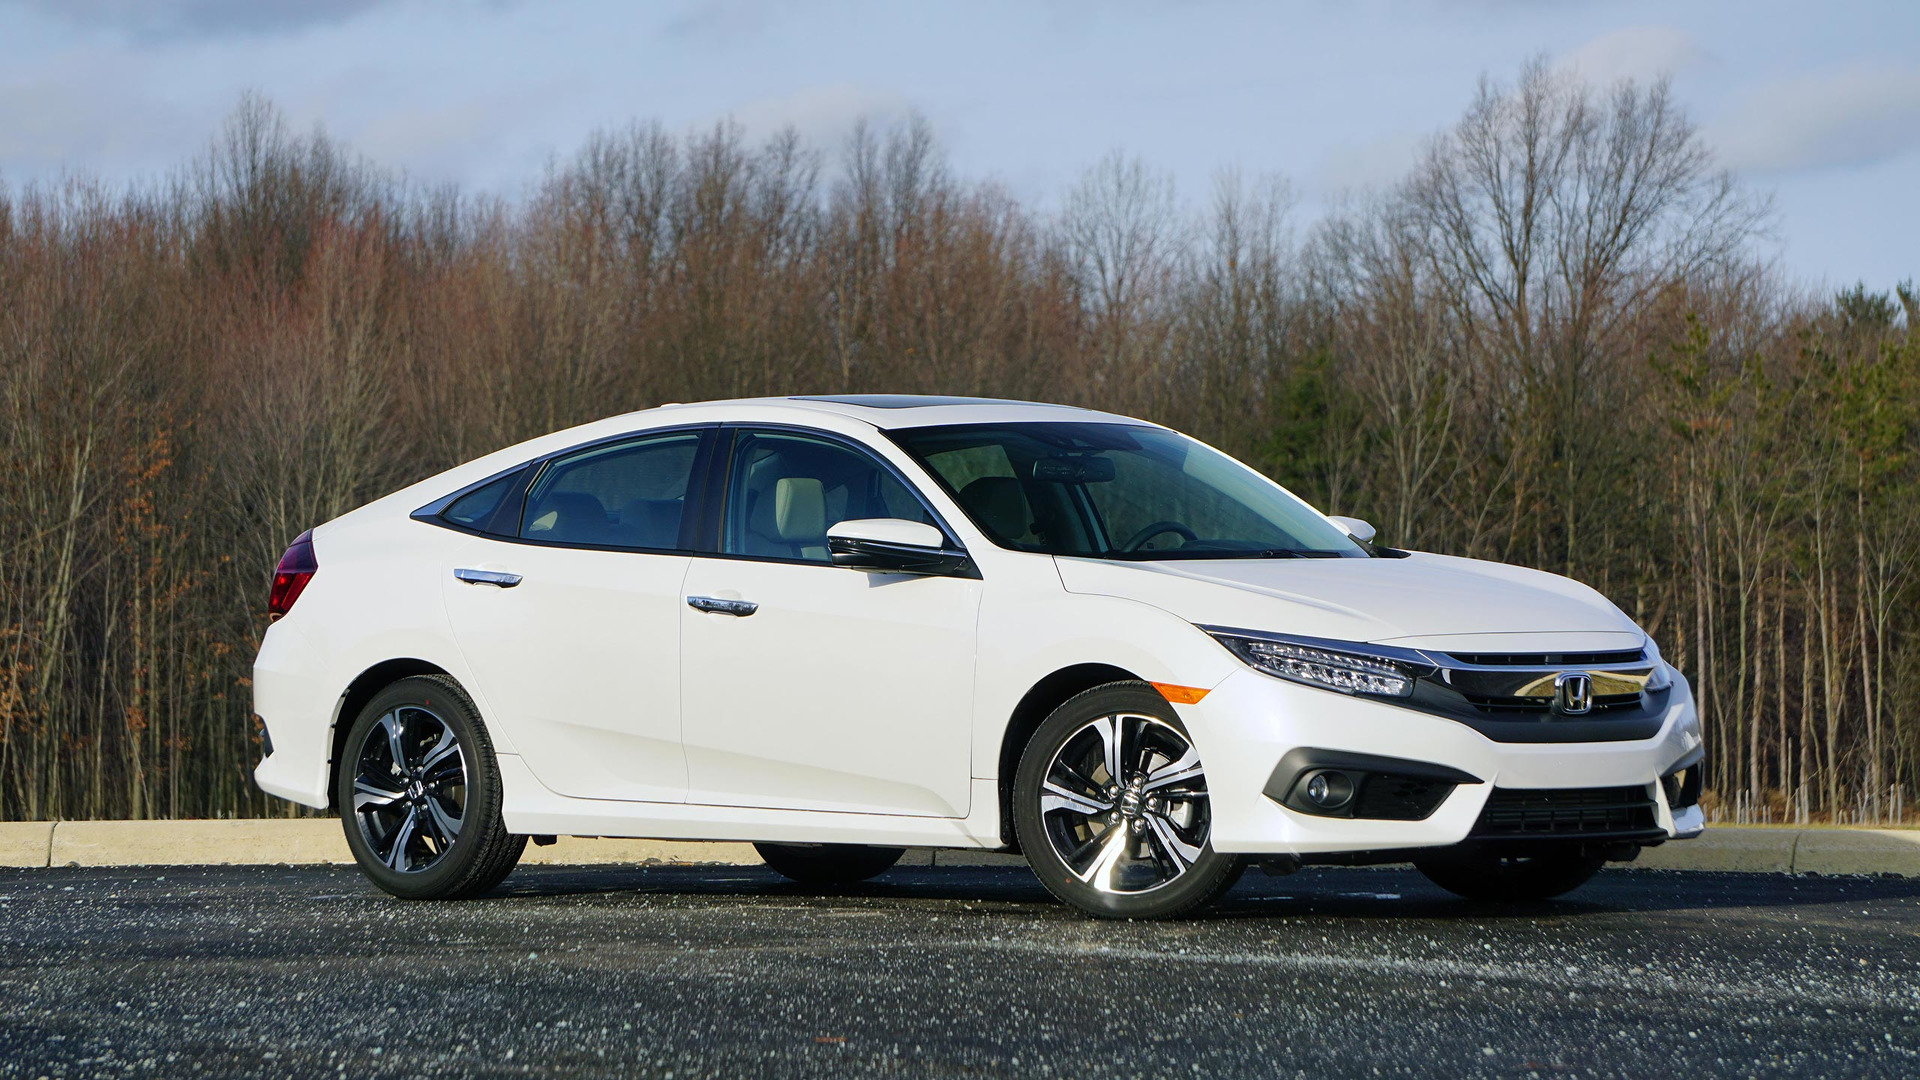 Honda Civic Sedan Review Tough To Beat